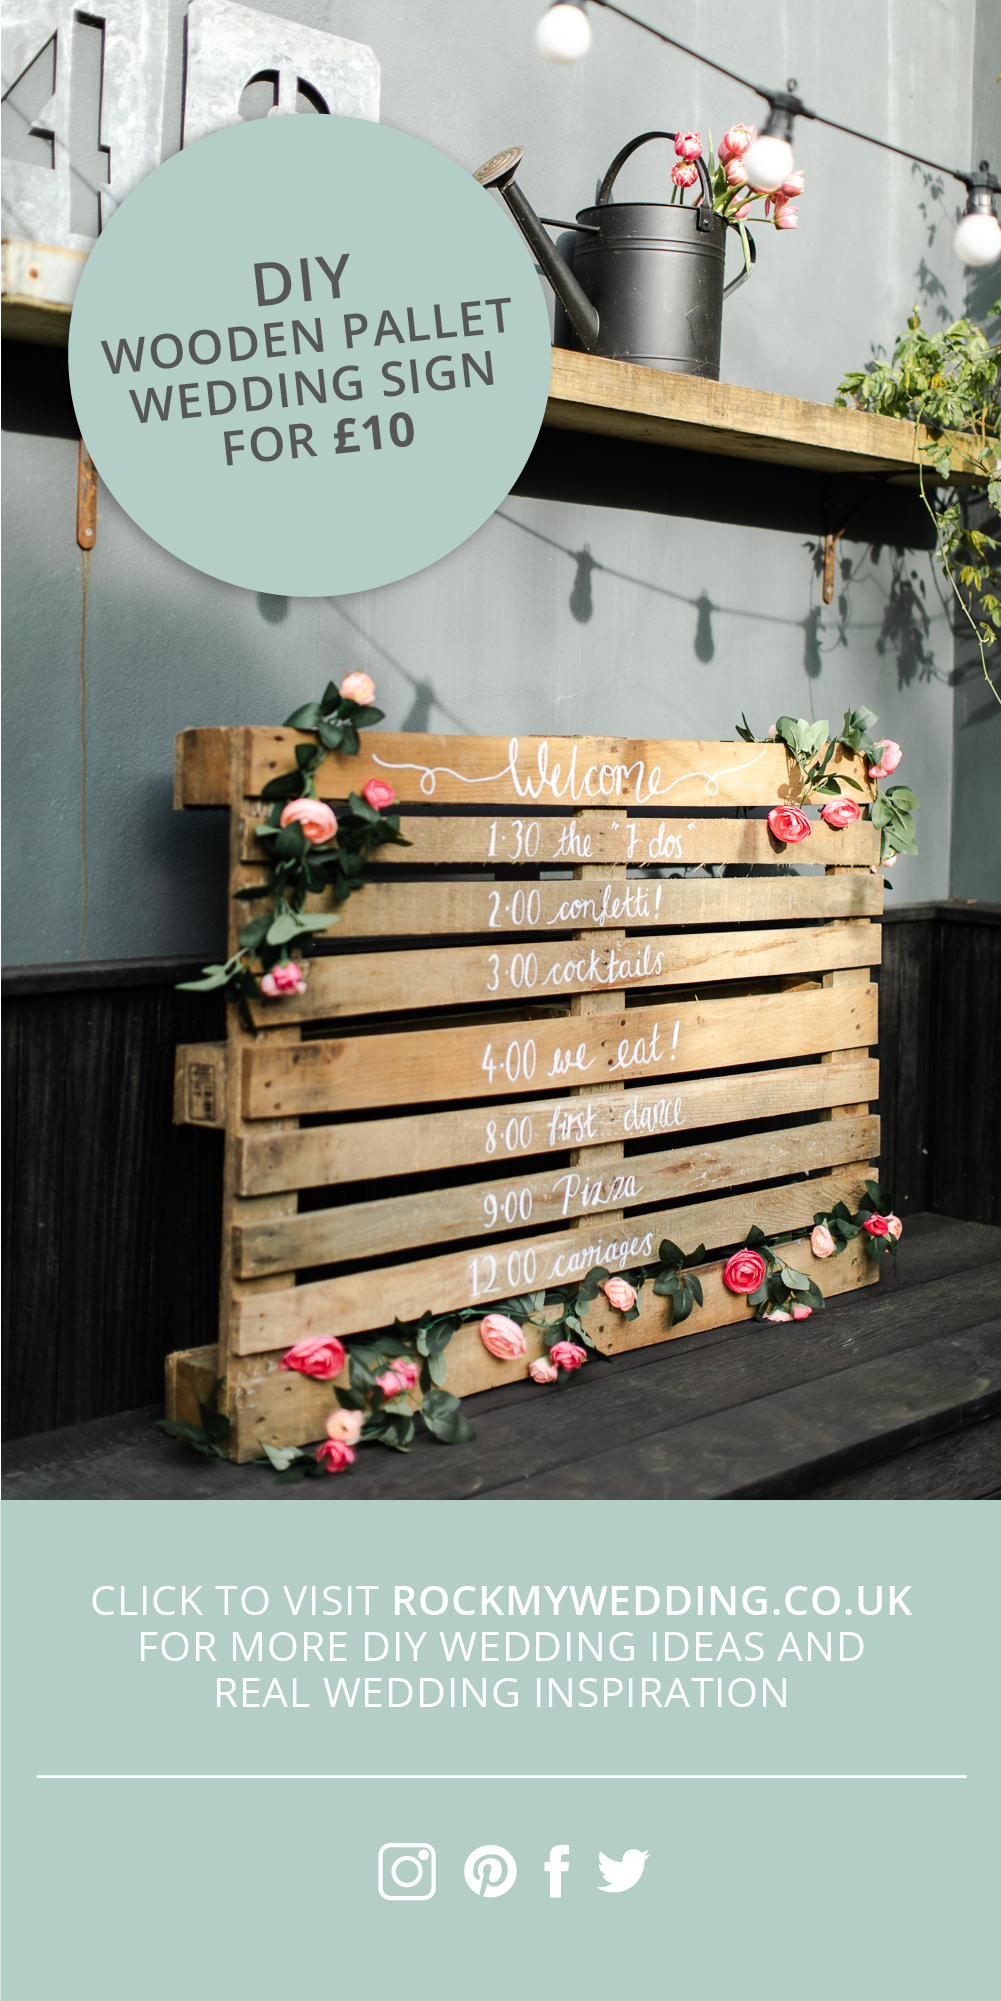 How to Make a DIY Wooden Pallet Order of the Day Wedding Sign for £10